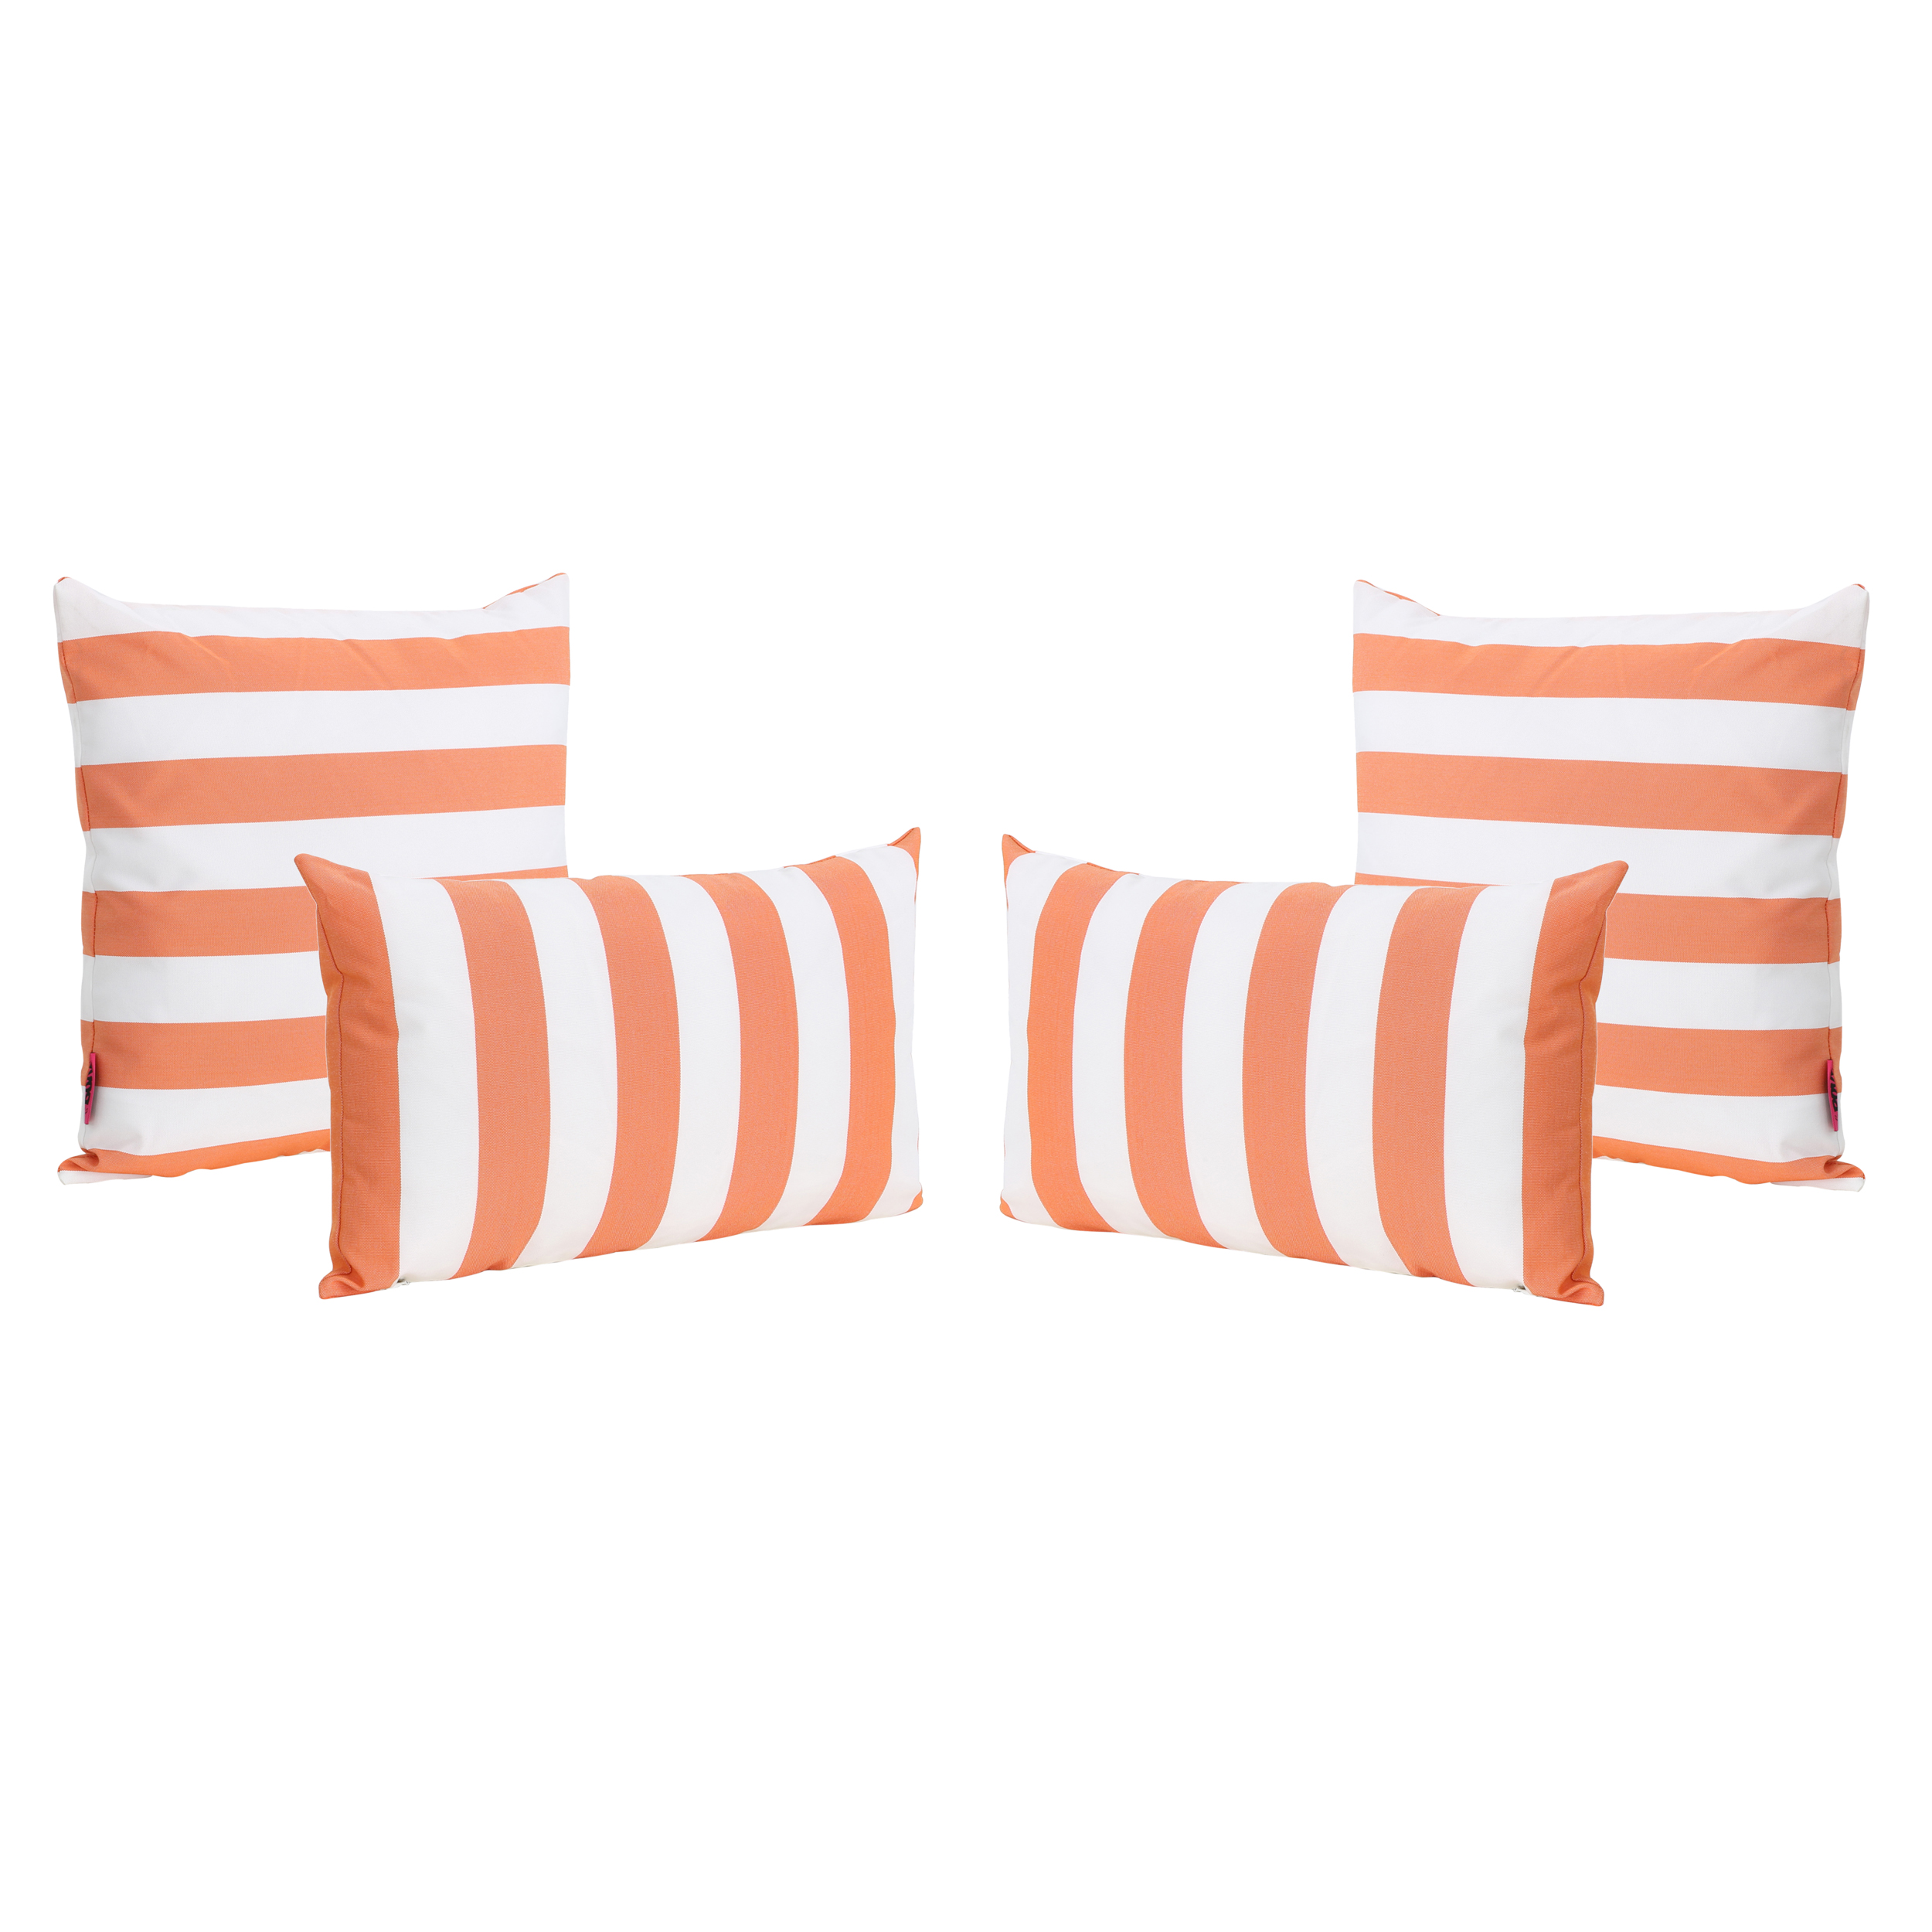 la jolla outdoor water resistant square and rectangular throw pillows set of 4 orange and white striped